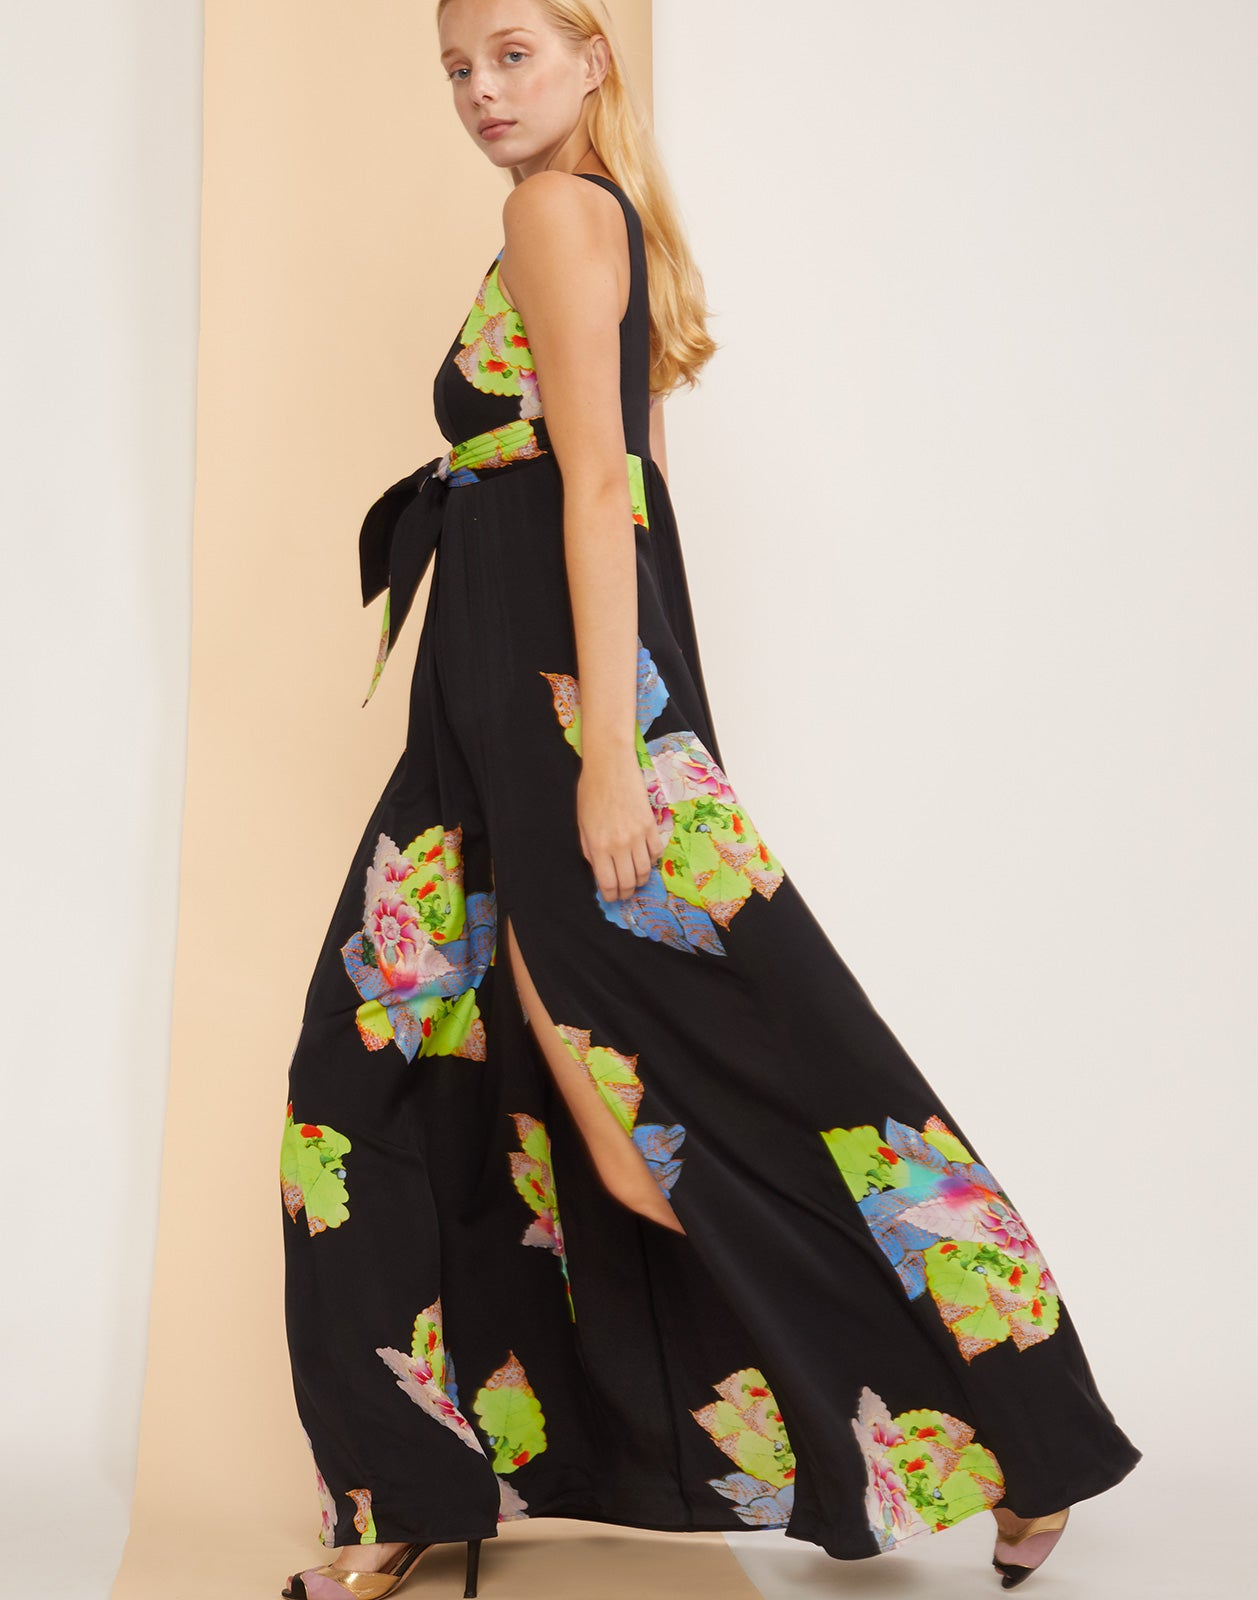 Model side stepping forward in Aurora Maxi Dress with skirt flowing.